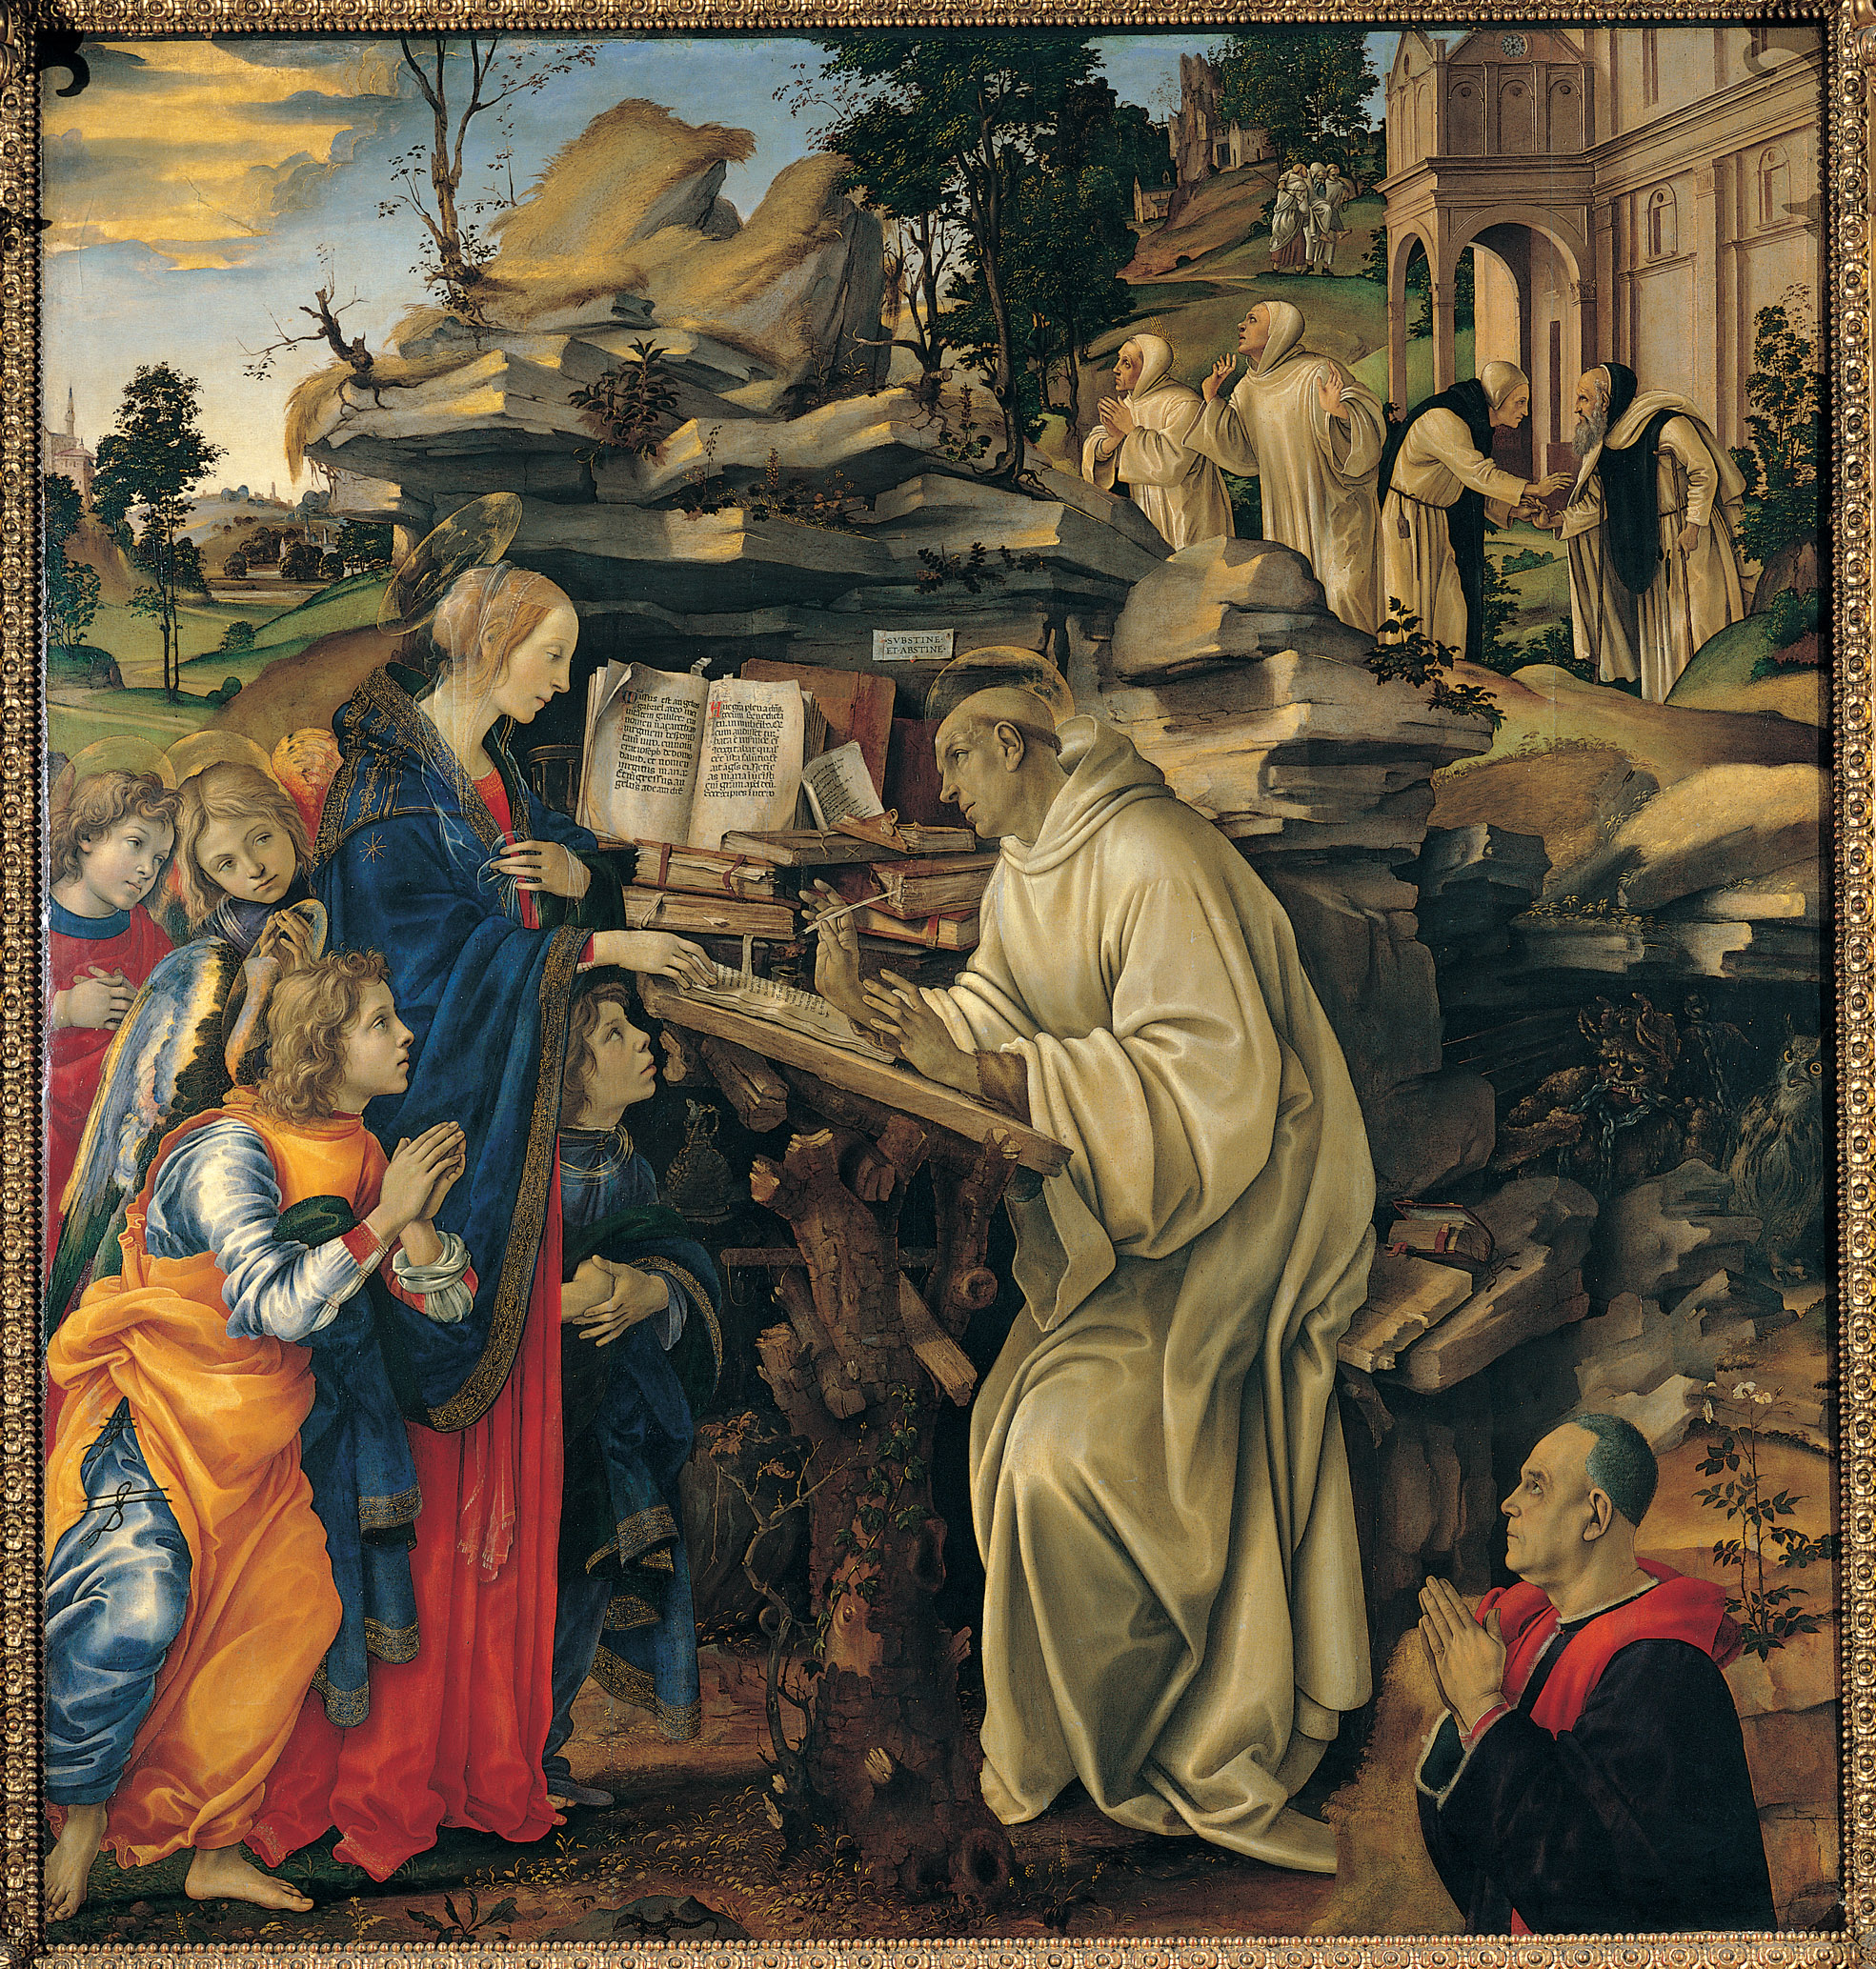 https://upload.wikimedia.org/wikipedia/commons/7/7e/Bernardo_claraval_filippino_lippi.jpg